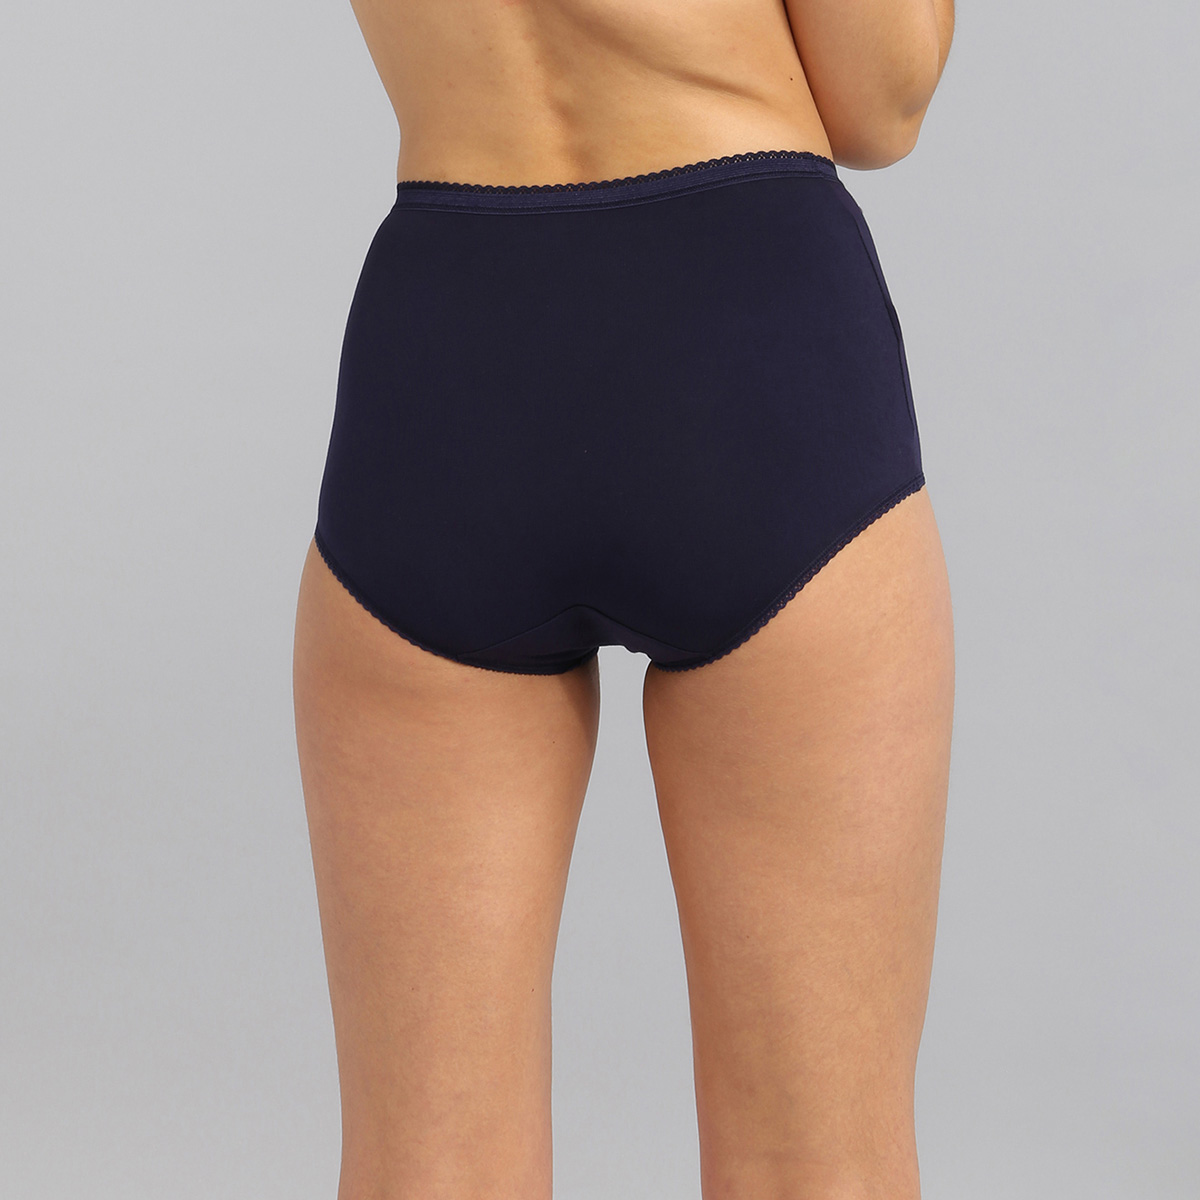 3 pack of full knickers in red, navy & white Cotton Stretch, , PLAYTEX